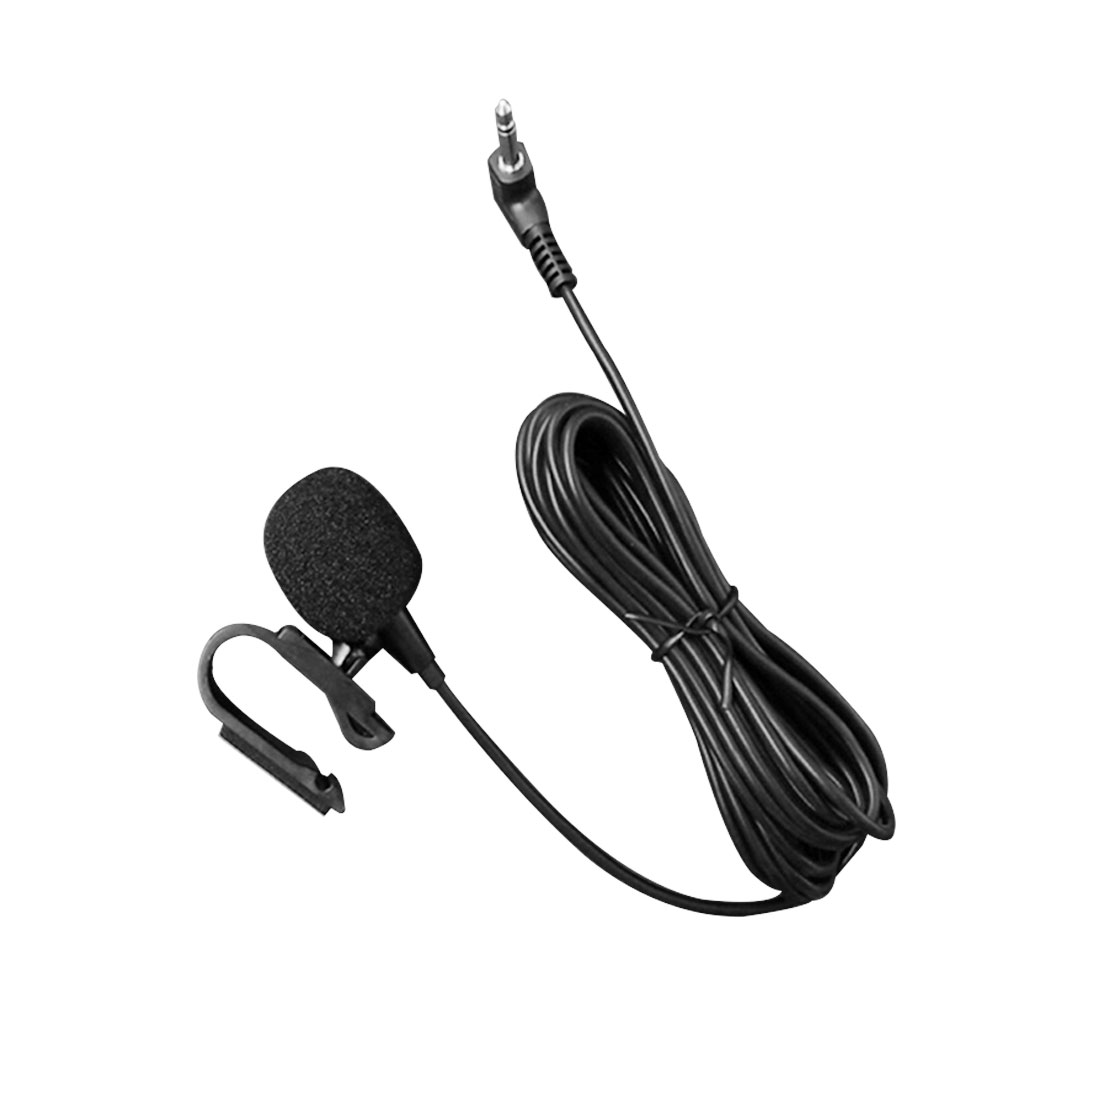 Marsnaska Hot 3.5mm External Microphone Mic For Car DVD Radio Laptop Stereo Player HeadUnit Cable 3m With U Shape Fixing Clip